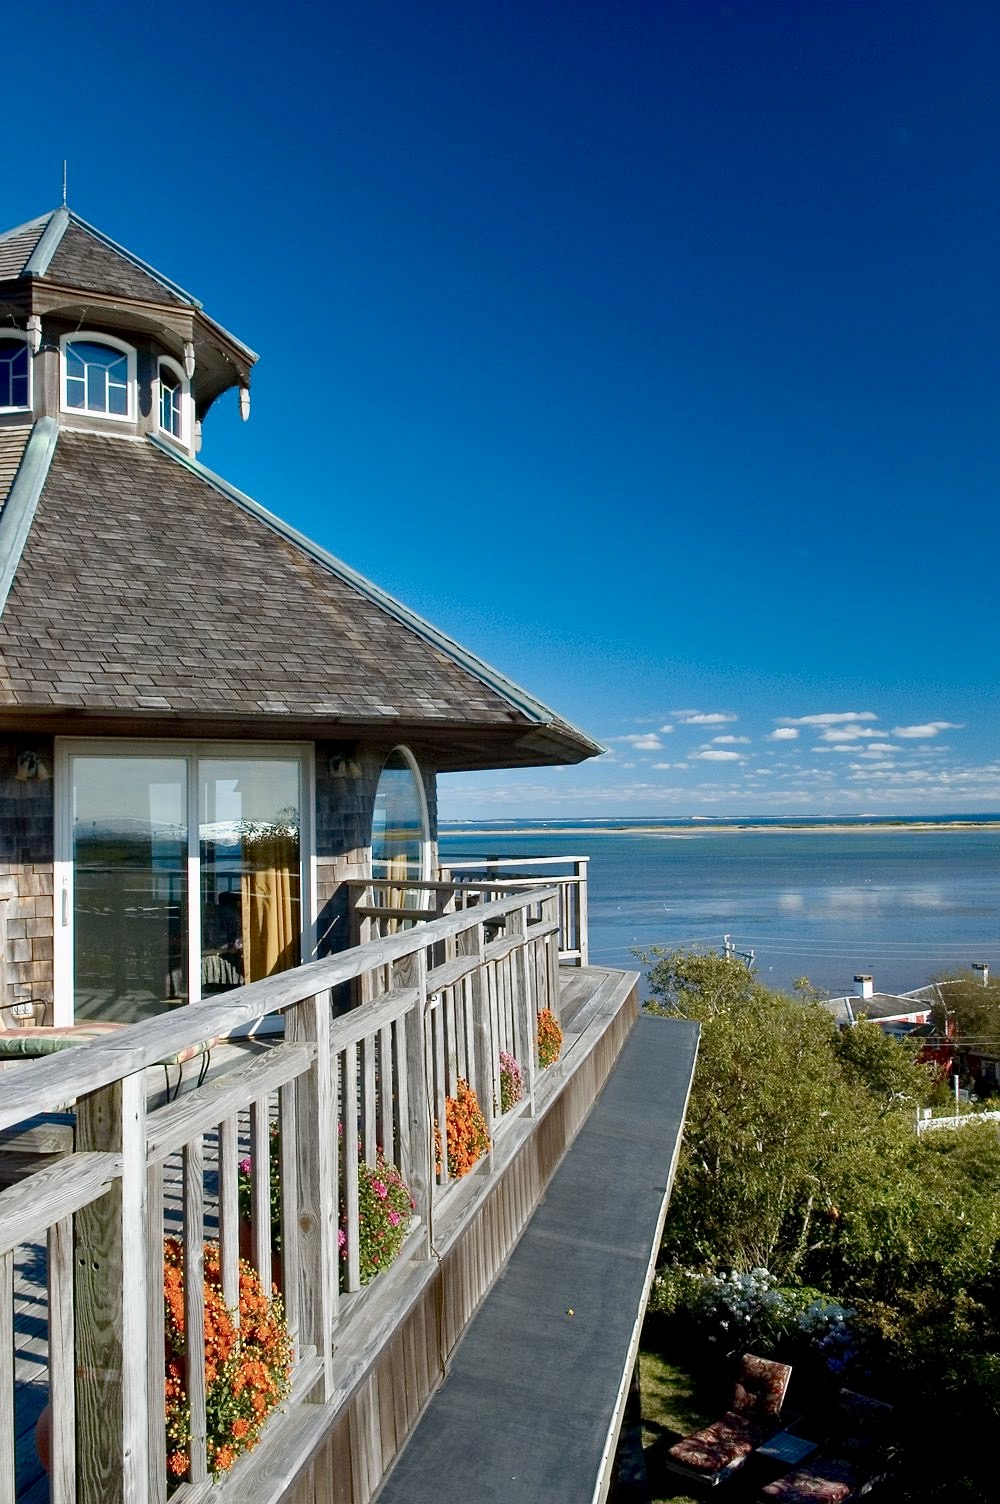 A picture of the Lands End Inn overlooking the water in P-Town